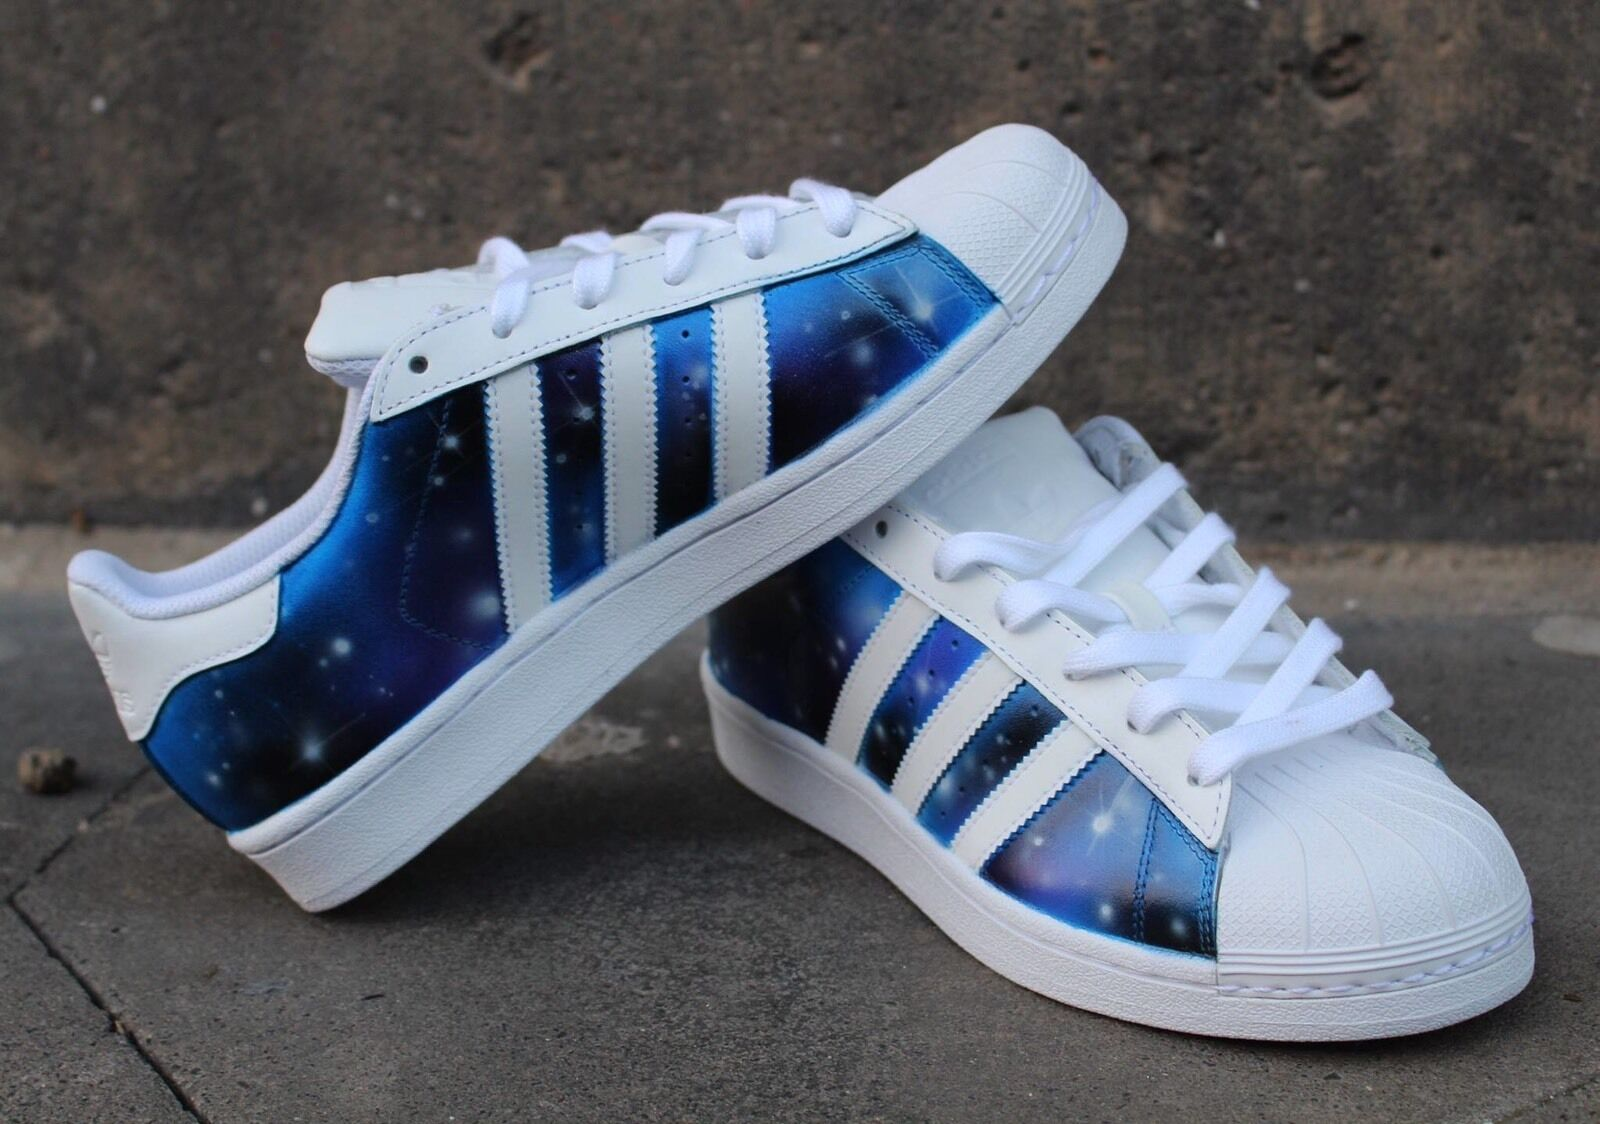 Custom Painted Adidas superstars Blau Purple Galaxy Sneaker Airbrush Graffiti